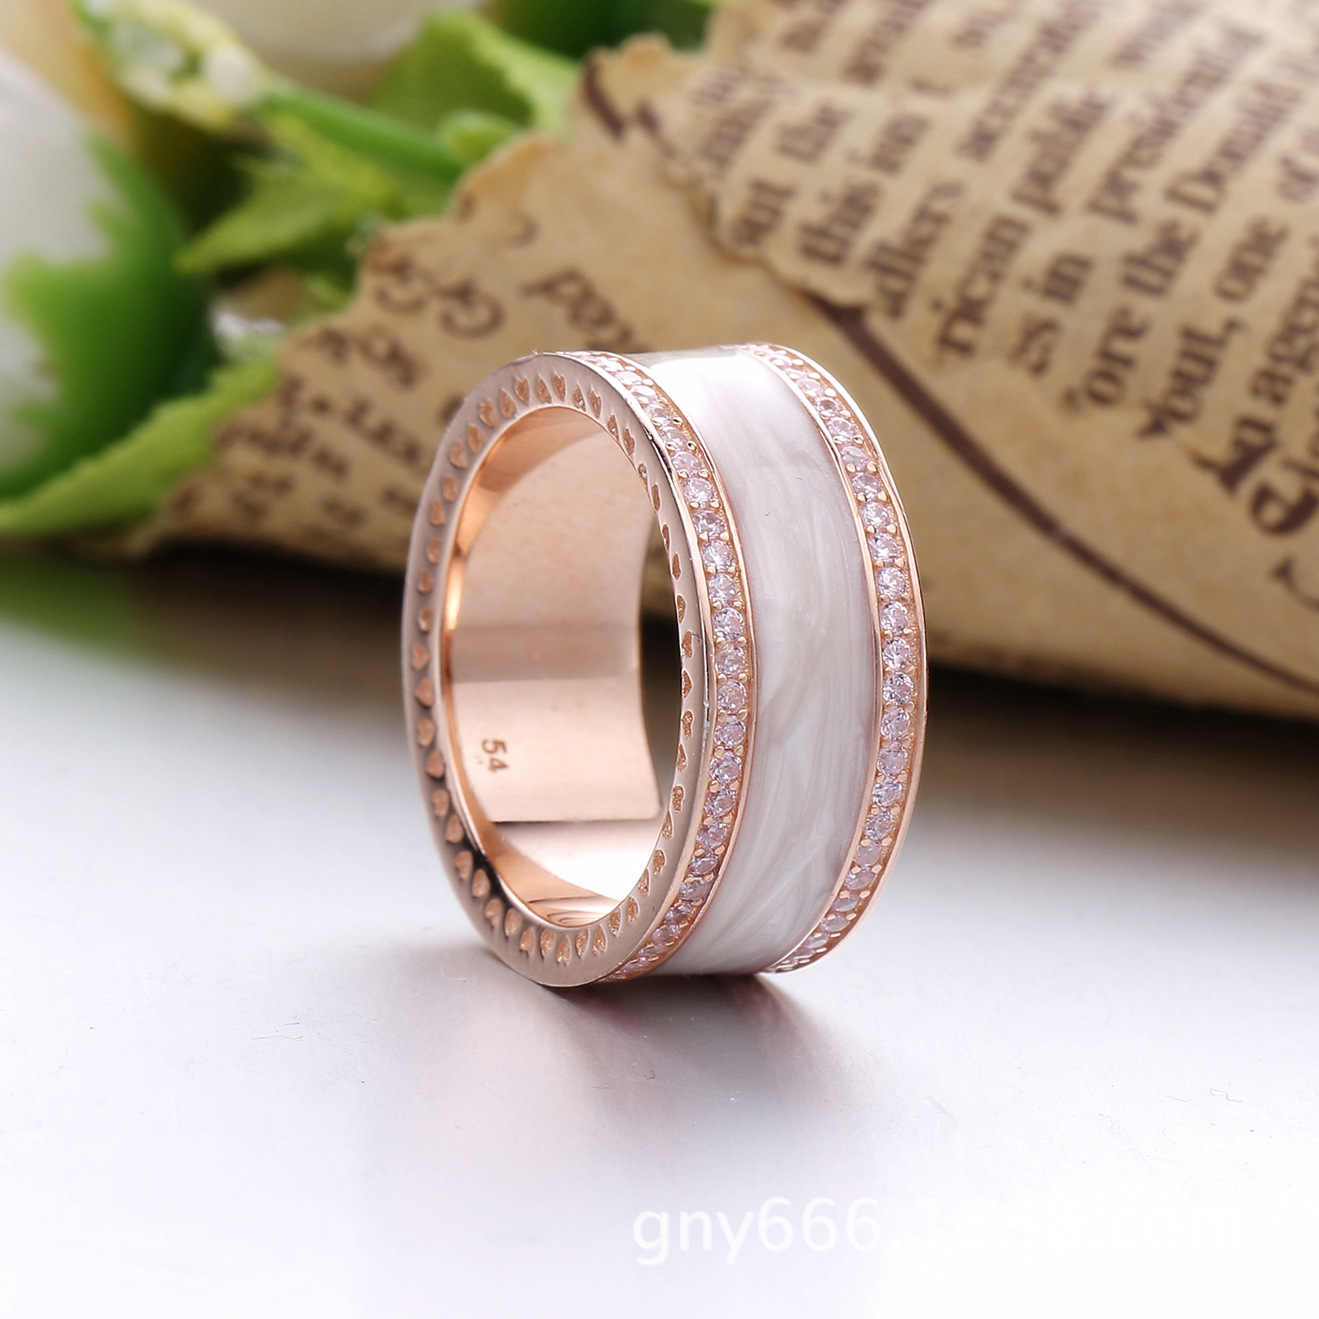 6a51b27e1 ... Authentic 925 Sterling Silver Ring Rose Gold Pink Hearts Of Pandora  Band Rings With Crystal For